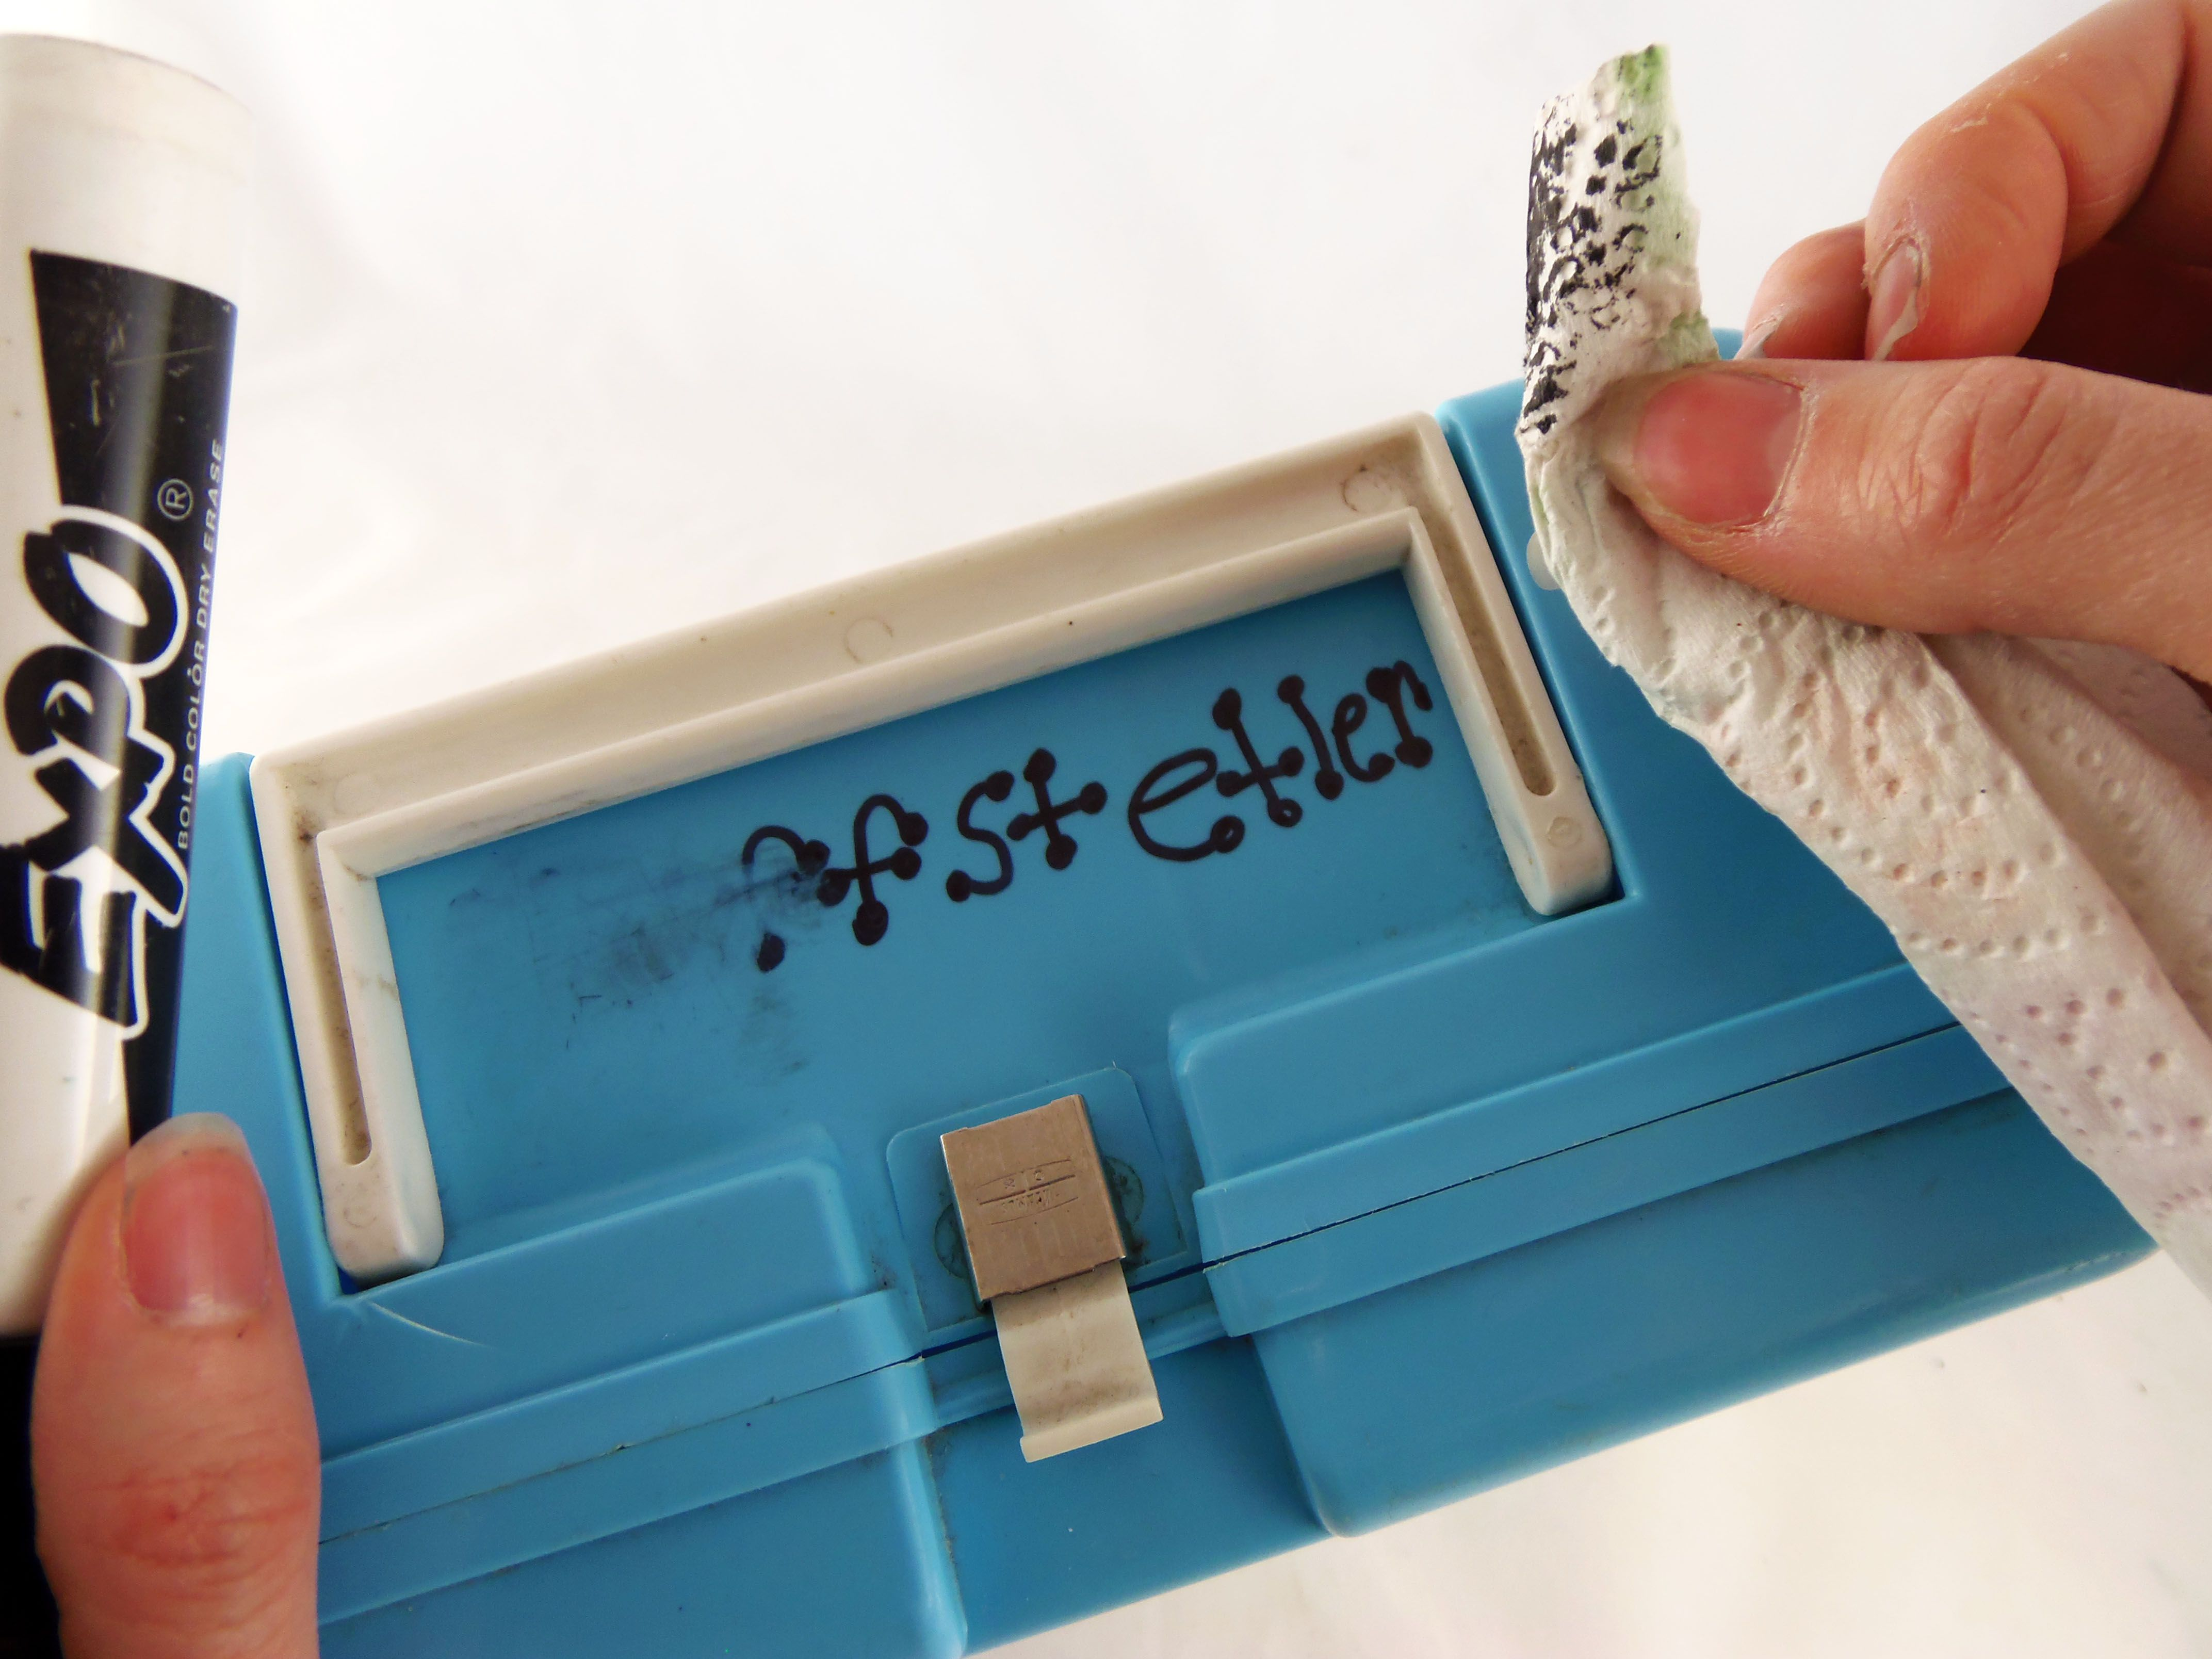 How to Remove Permanent Marker From Hard Plastics